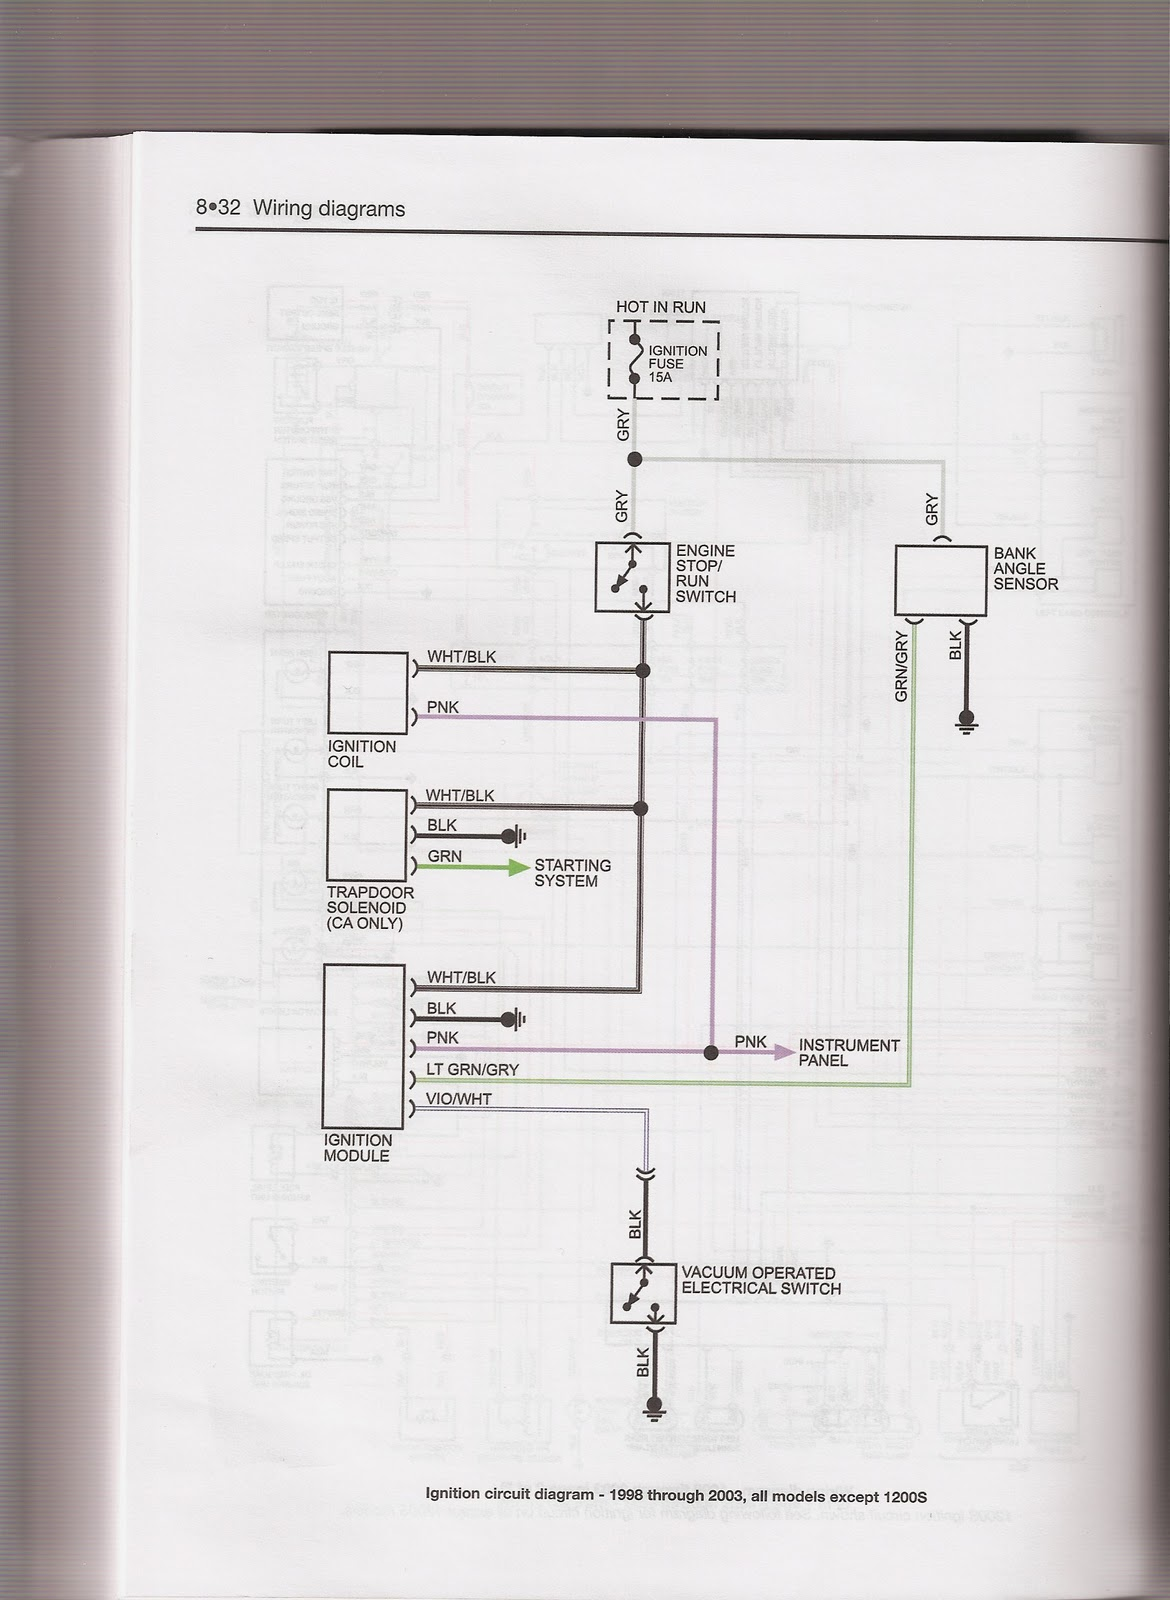 wiring diagrams for a 98 03 sportster  [ 1170 x 1600 Pixel ]